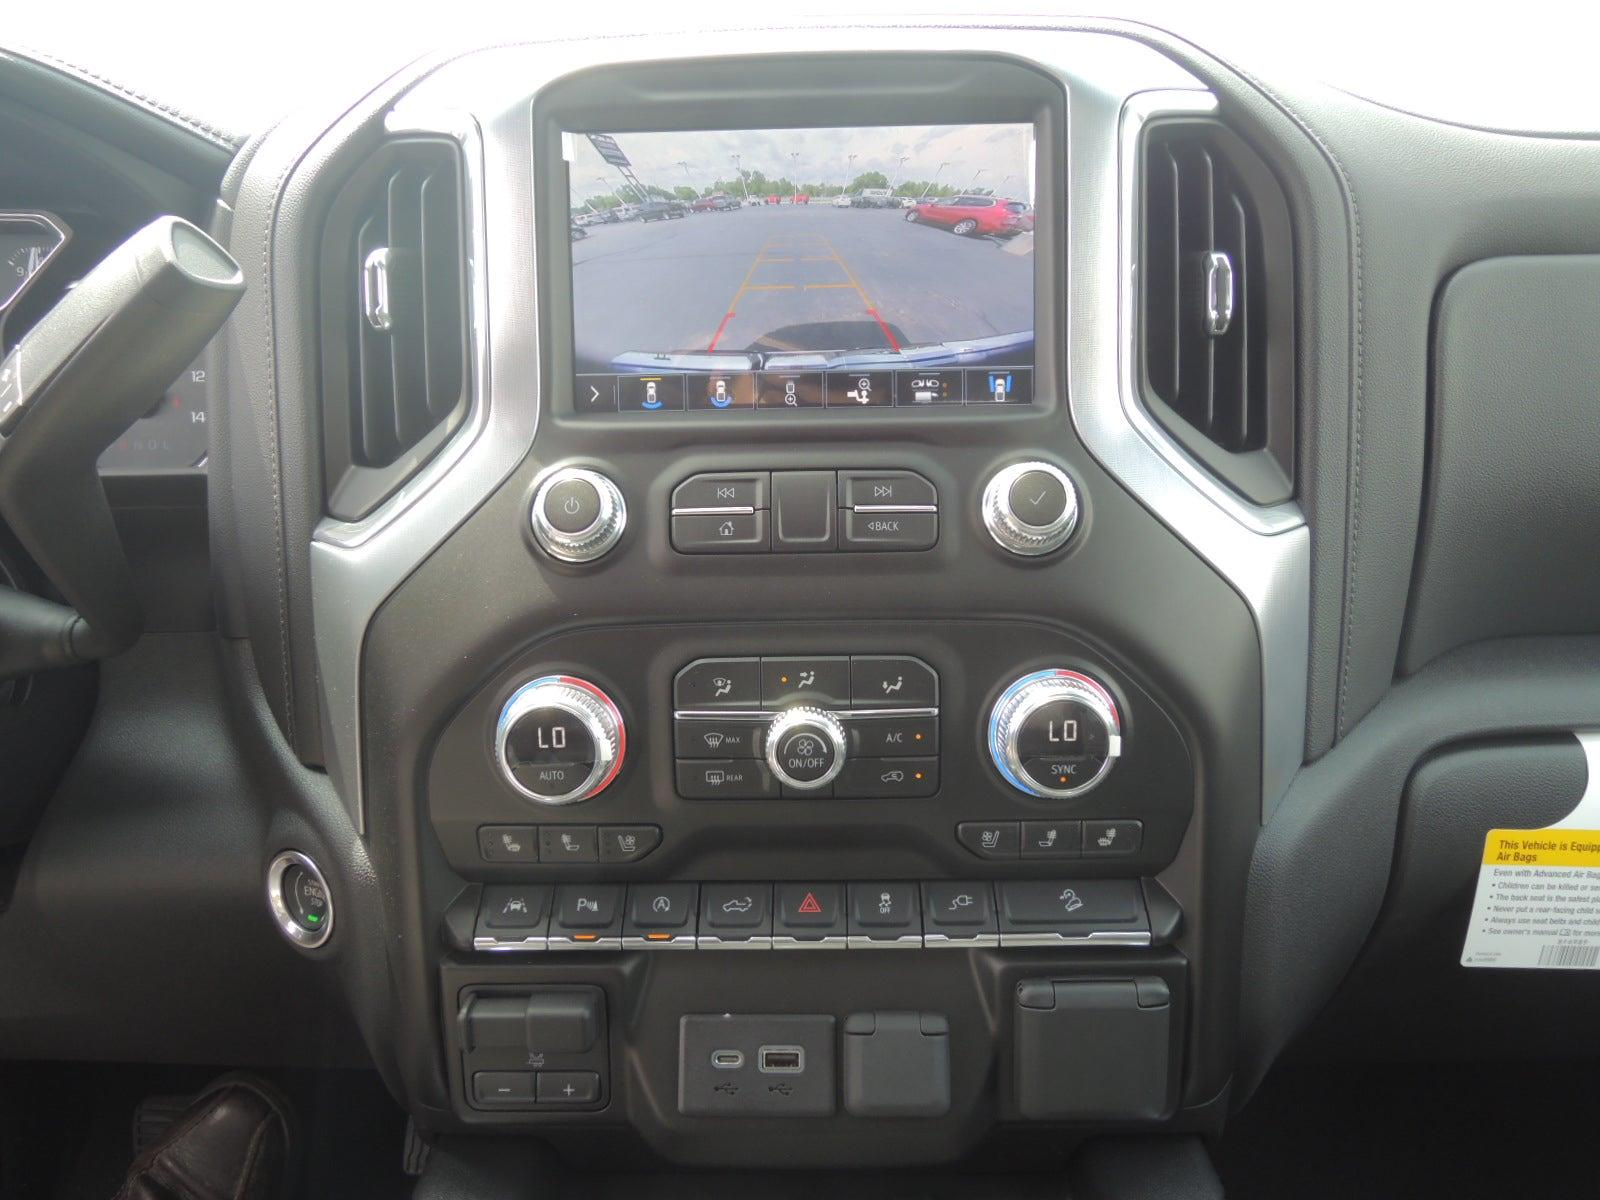 2021 GMC Sierra 1500 Crew Cab 4x4, Pickup #MT217 - photo 24